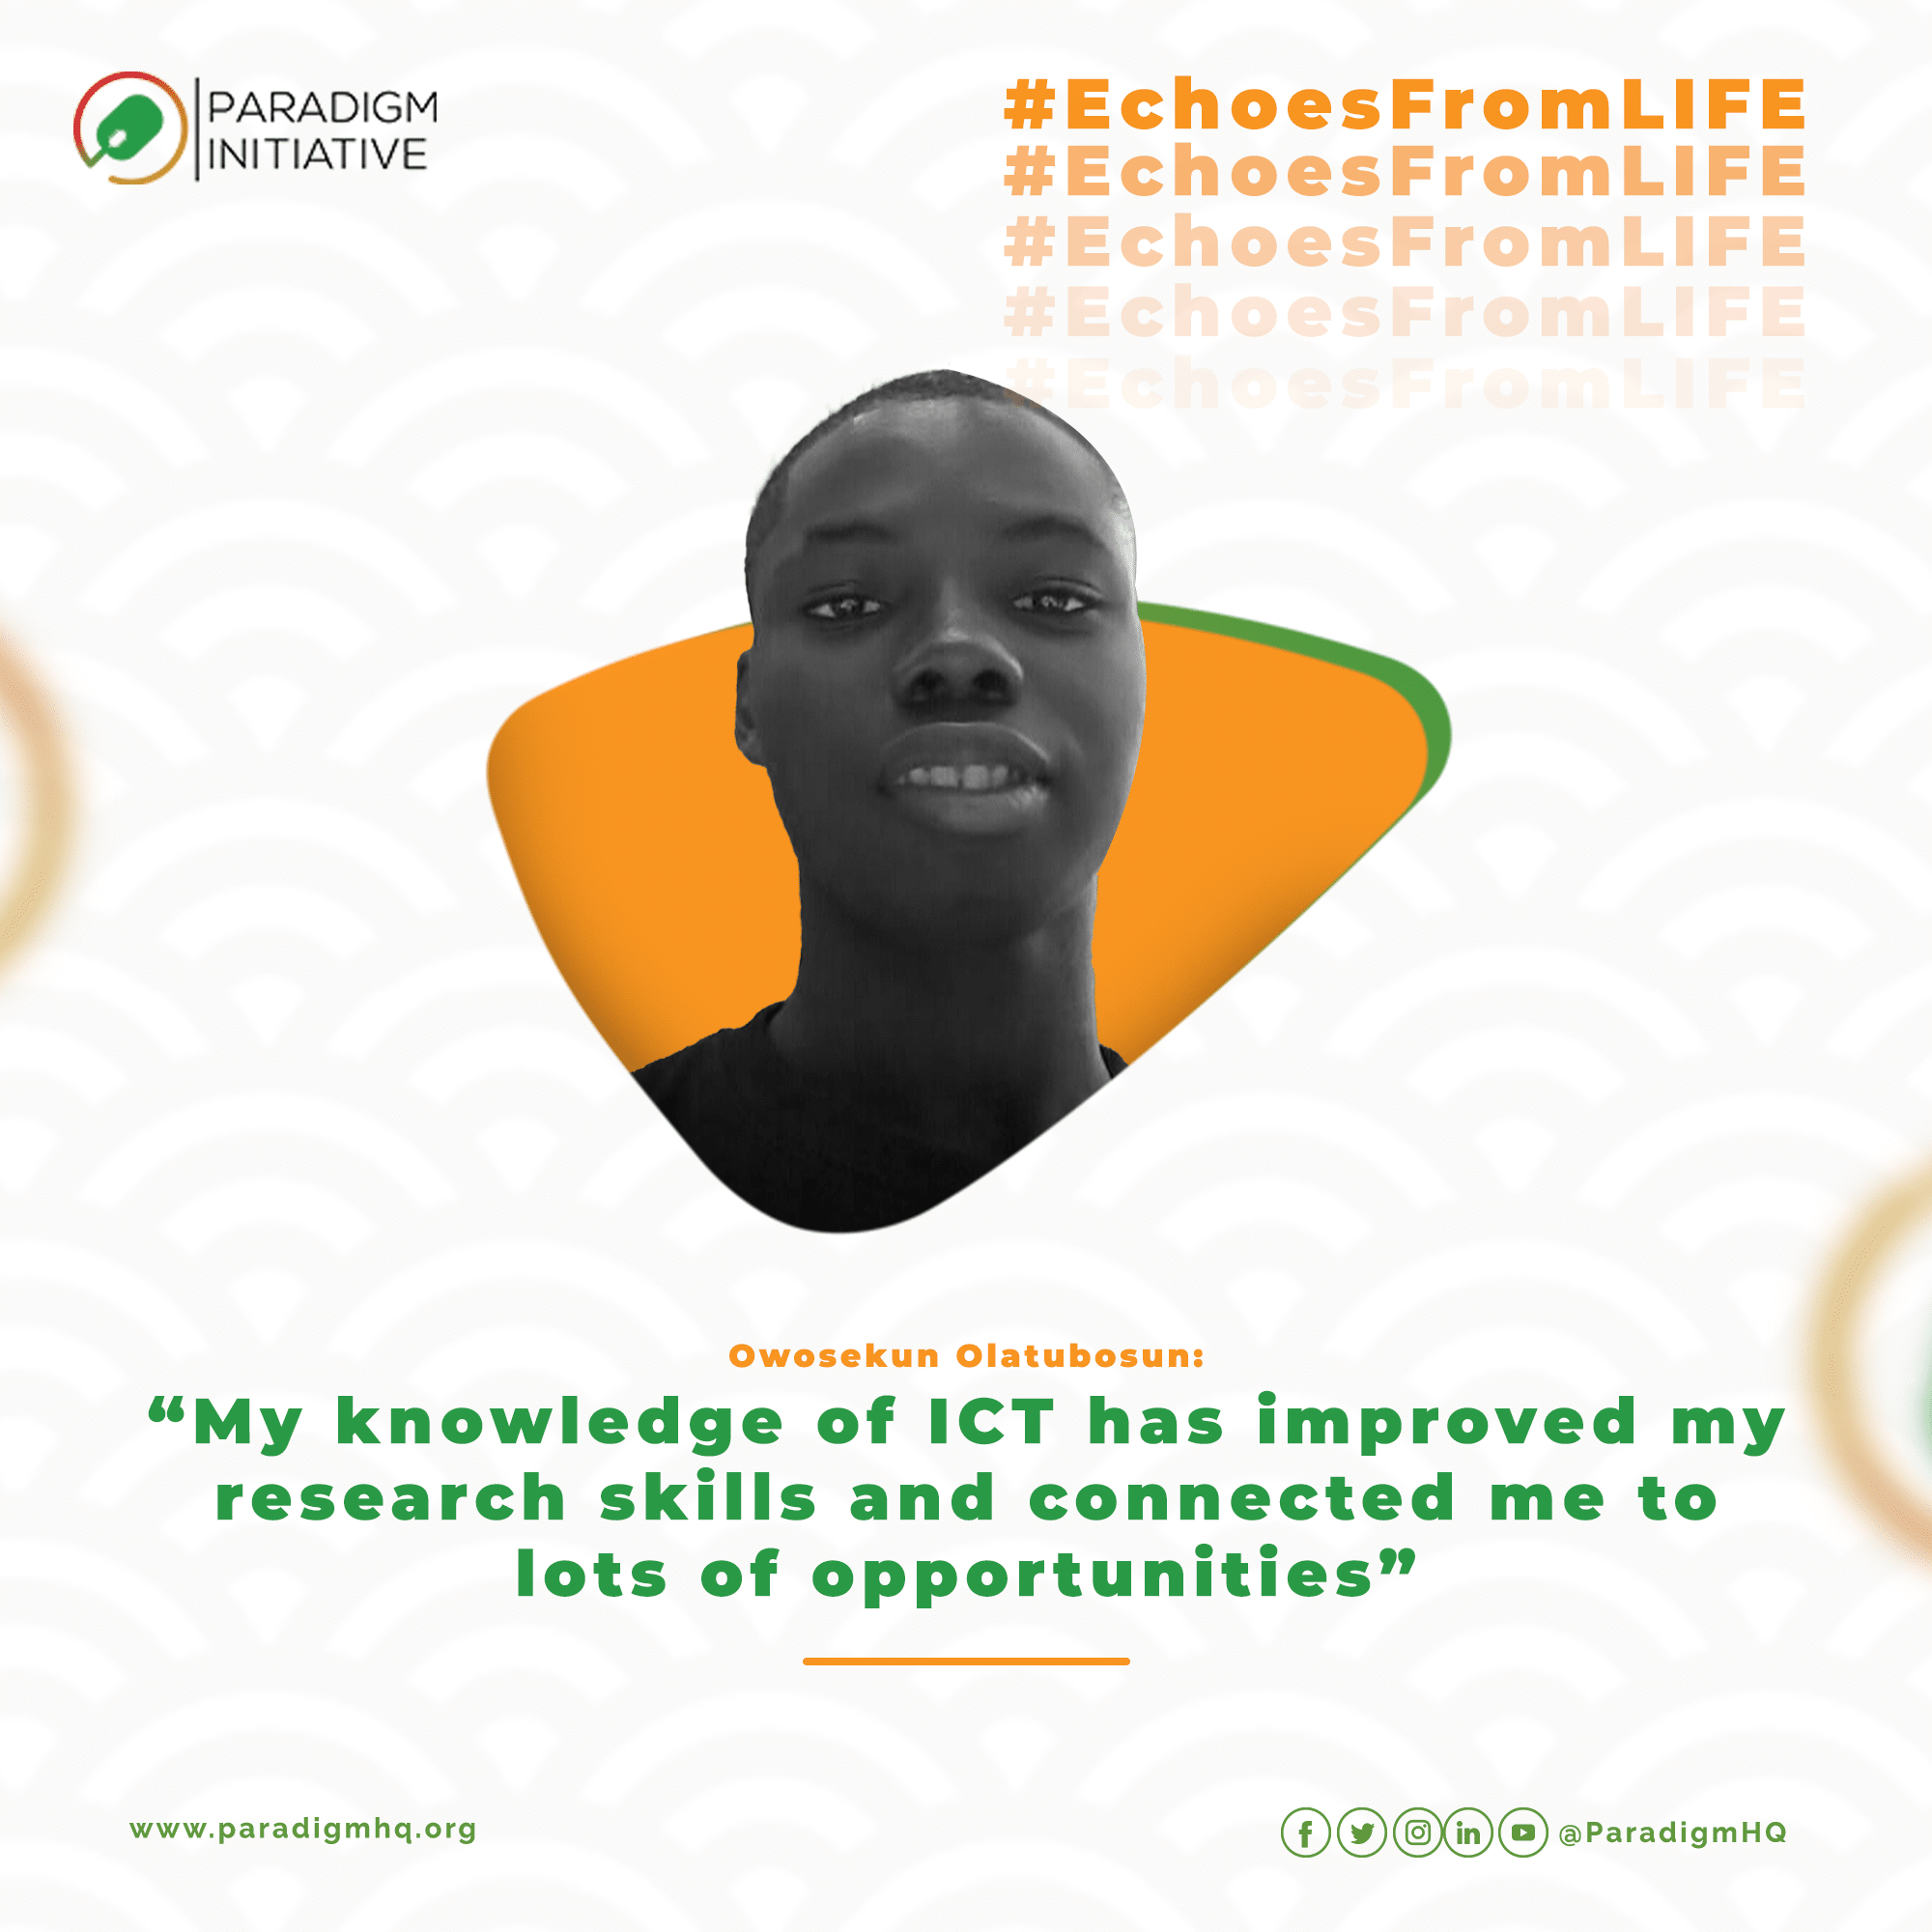 Owosekun Olatubosun: Knowing ICT has connected me to a lot of opportunities.